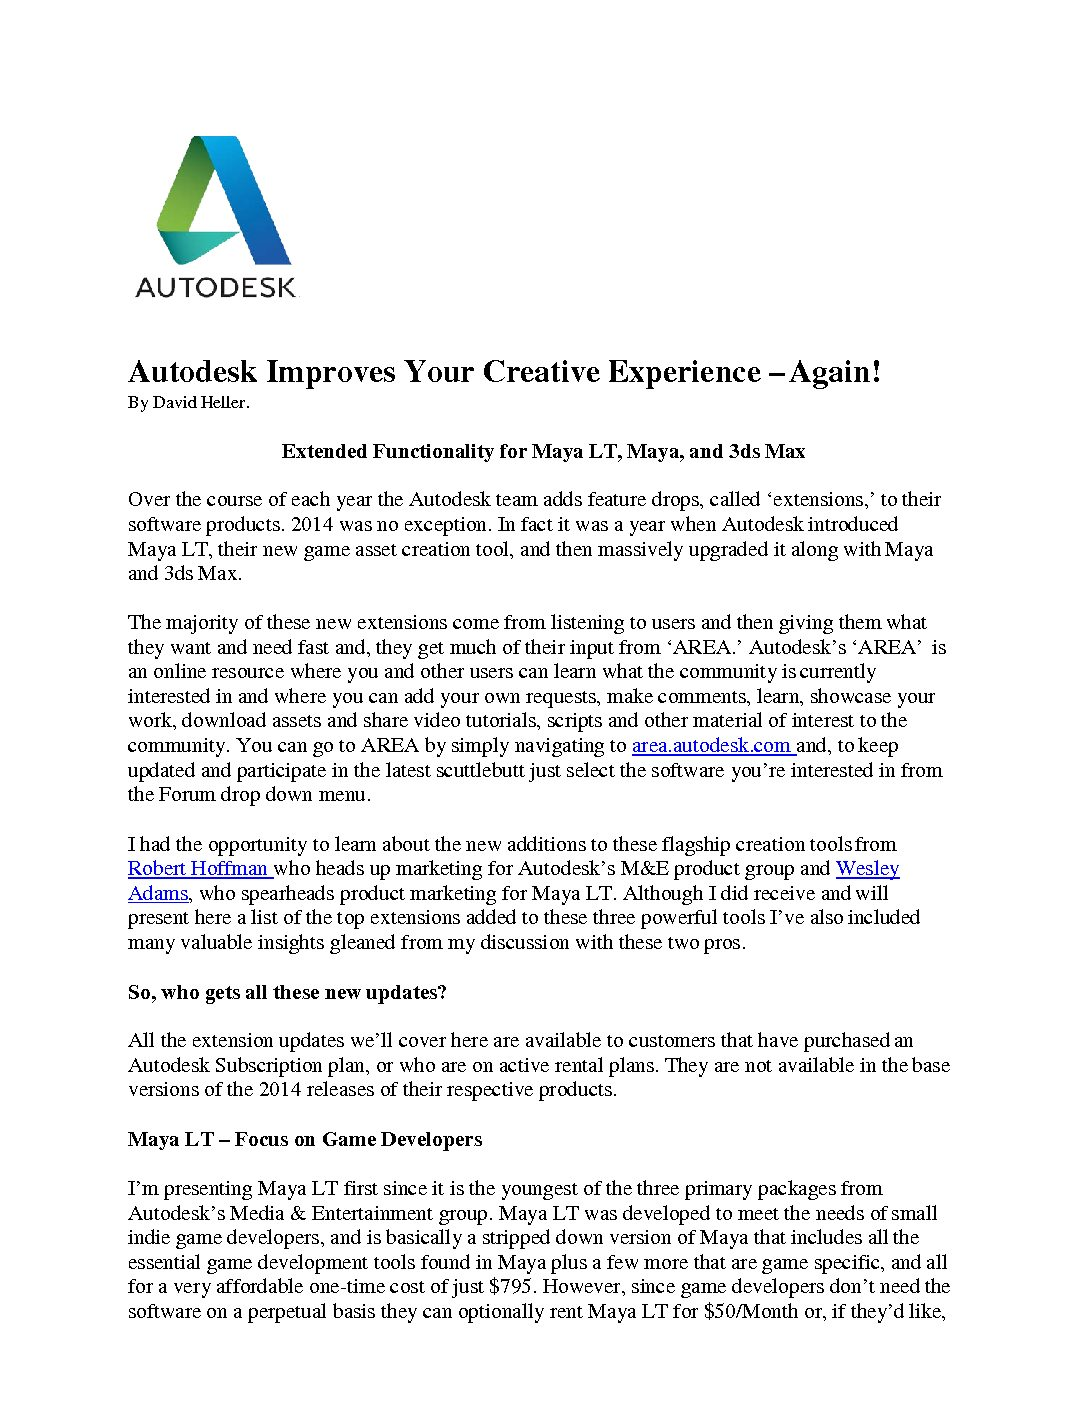 Autodesk Improves your Creative Experience